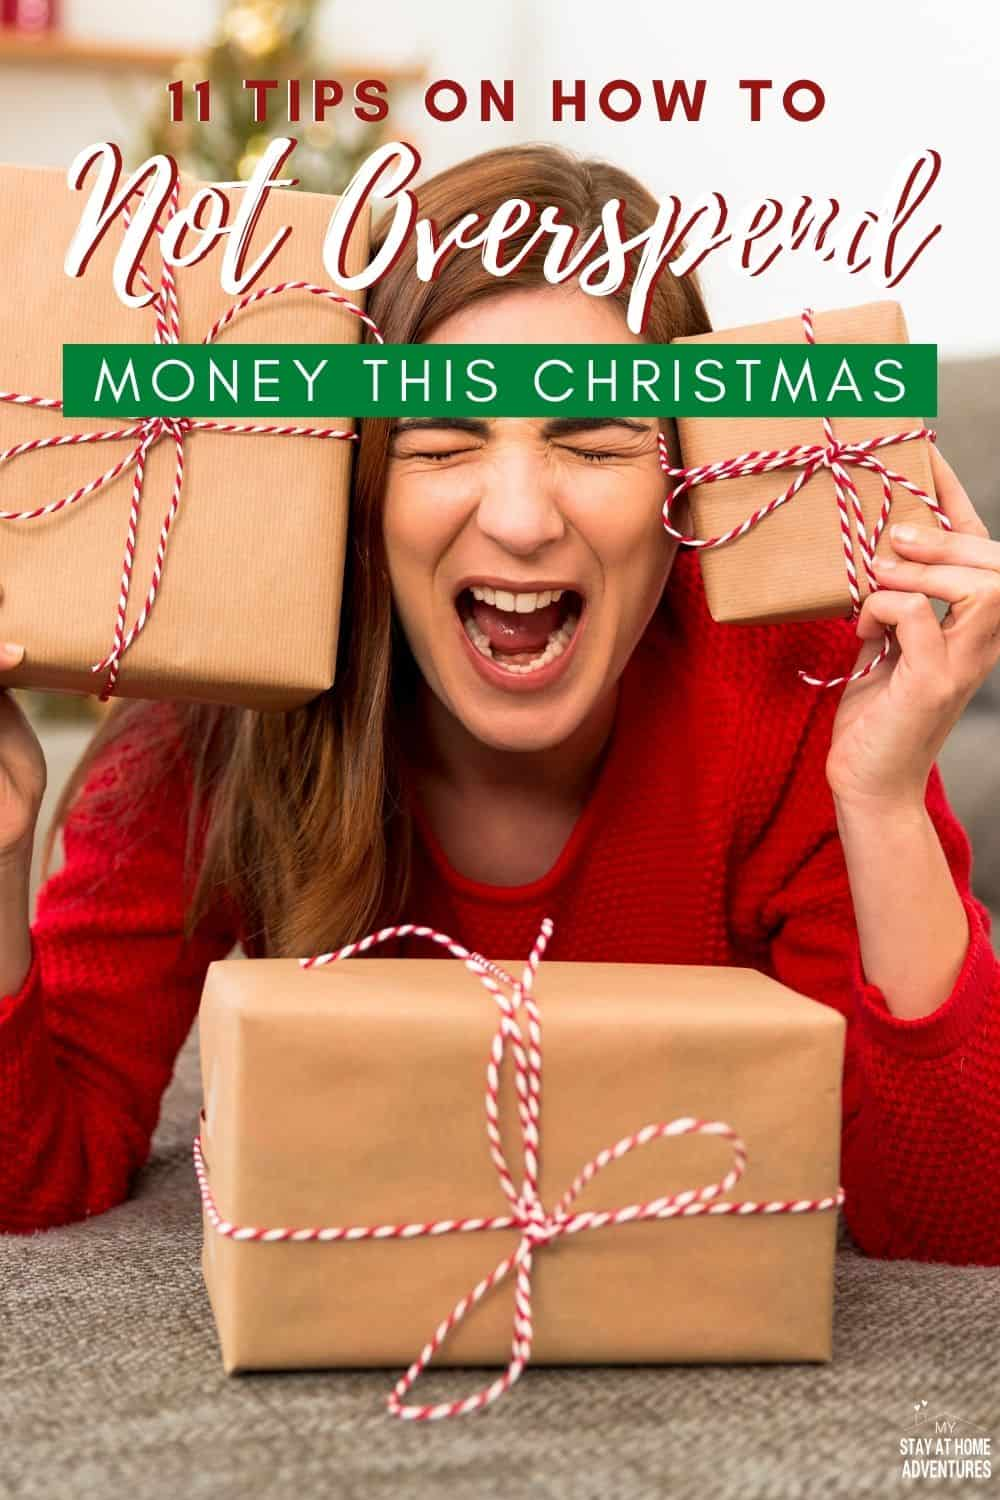 Are you trying to find ways NOT to overspend money this Christmas? Learn eleven tips to help you stay on track and avoid overspending money this holiday season. via @mystayathome